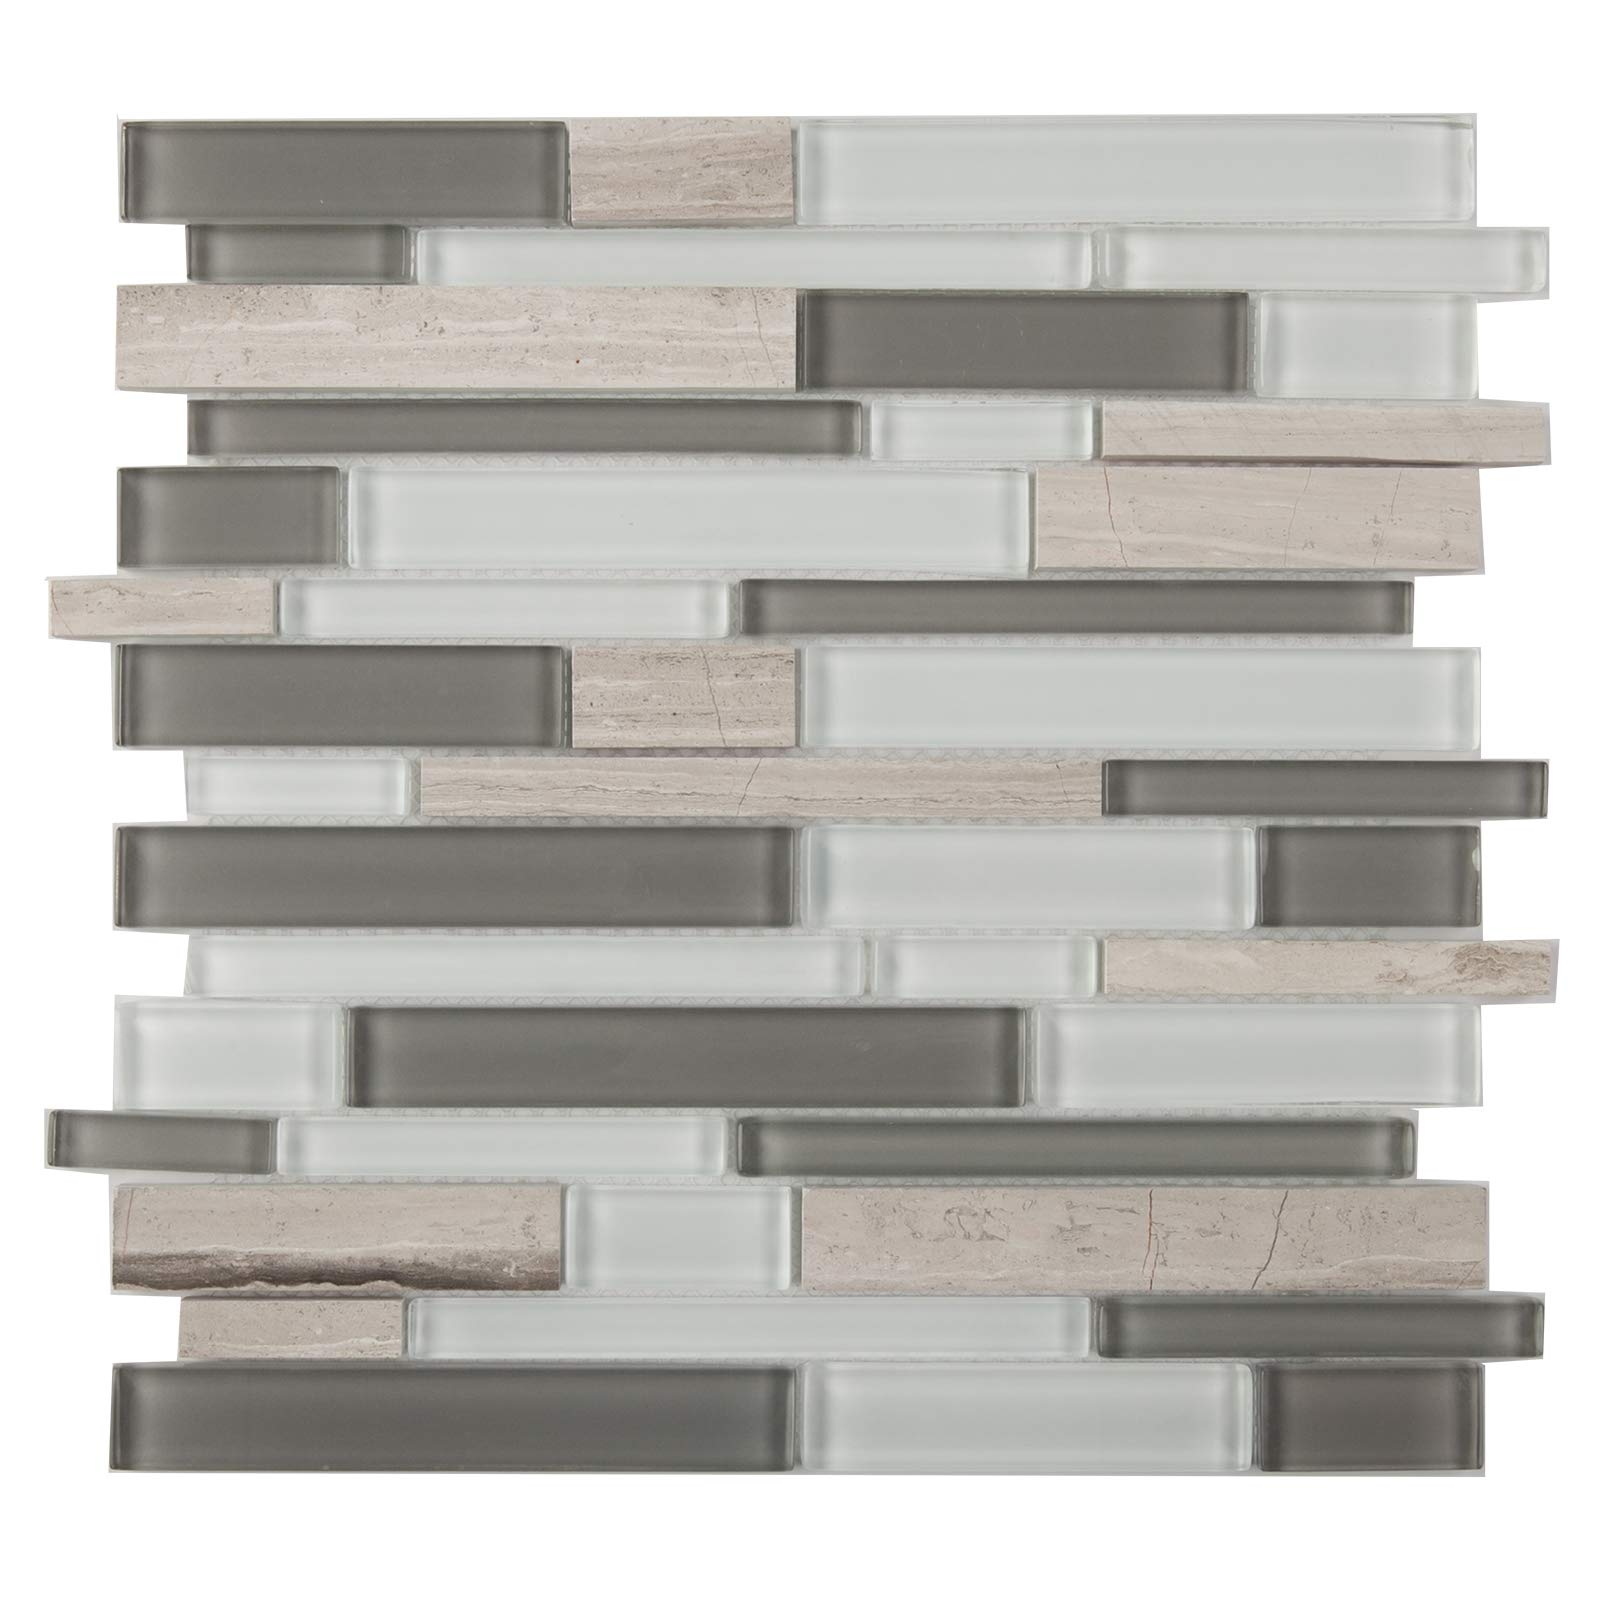 Special Sale - Glass and Marble Mosaic Tile,''Seasons Collection'', IL 803 - Summer, Mixed Strips, 12''X12'' (Box of 5 Sheets)